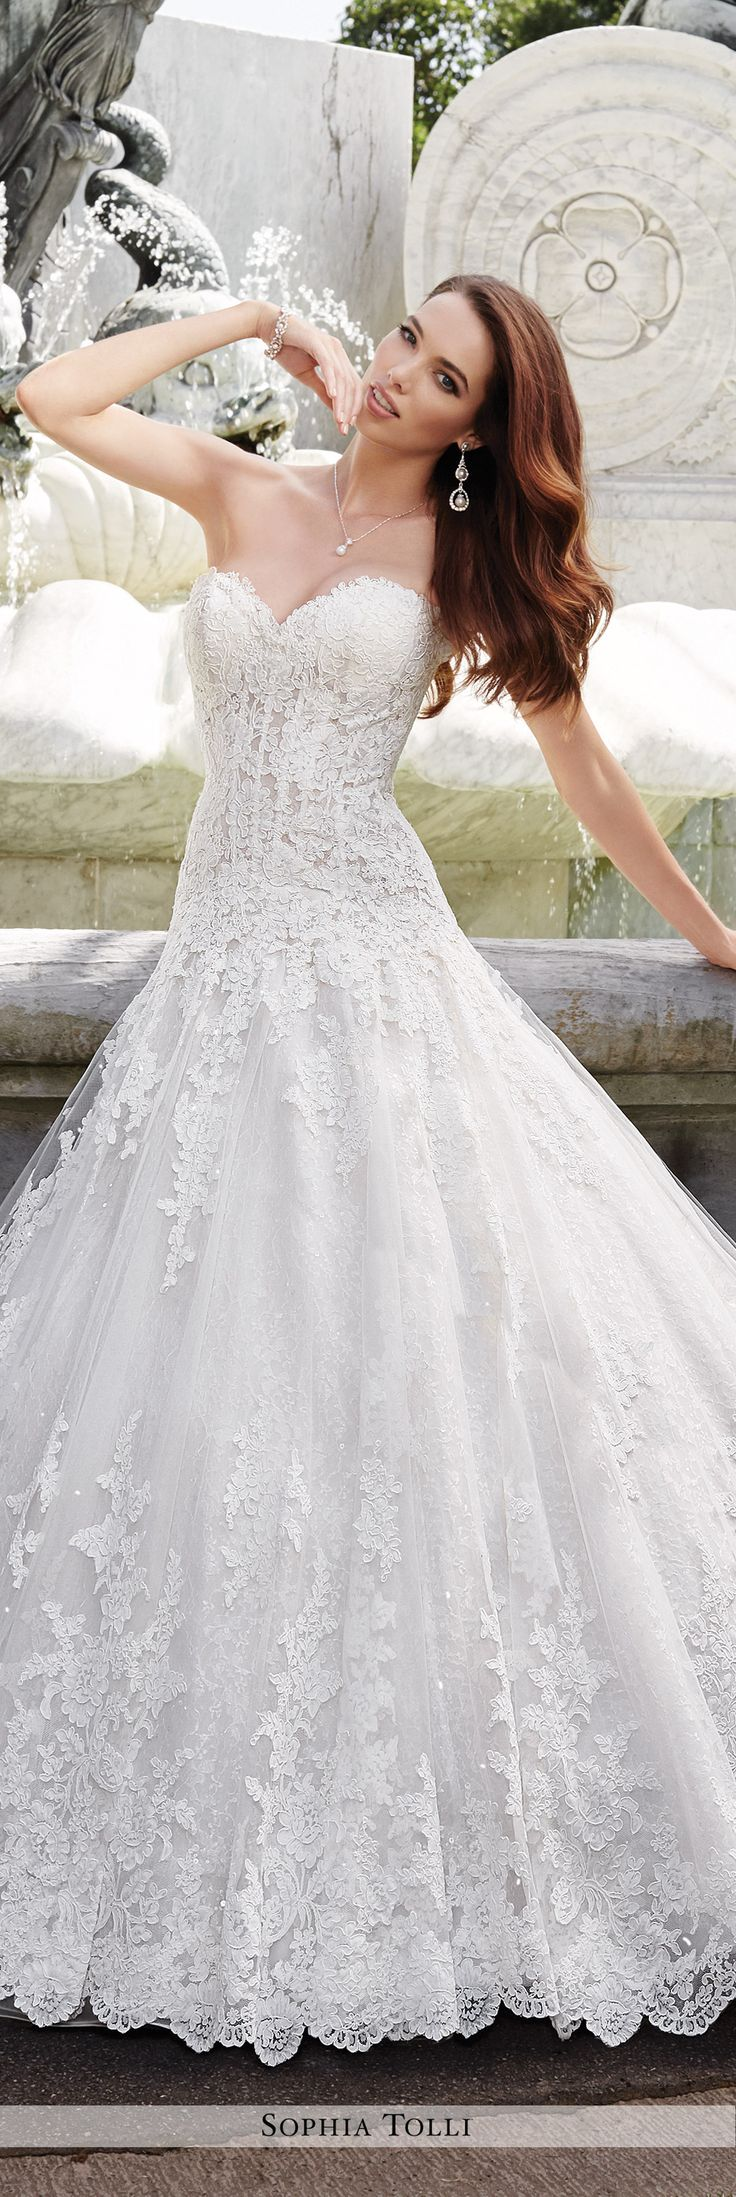 25 best ideas about sophia tolli wedding gowns on for Sophia tulle wedding dress